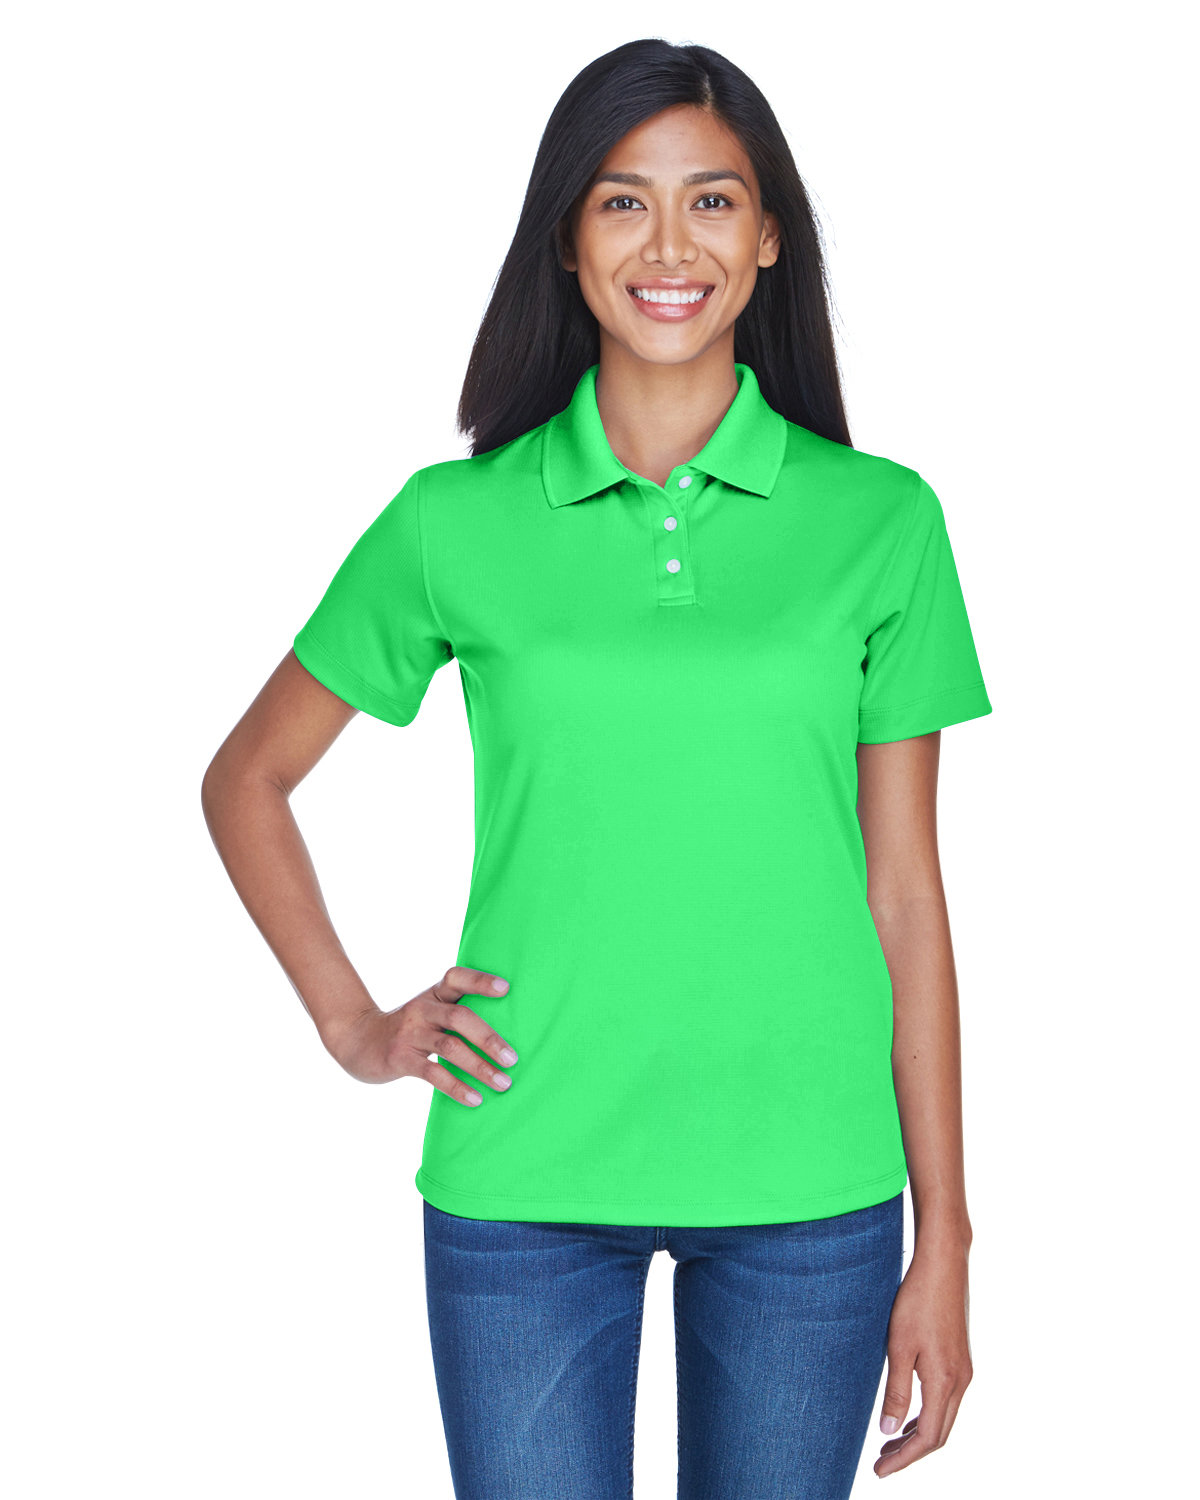 UltraClub Ladies' Cool & Dry Stain-Release Performance Polo COOL GREEN